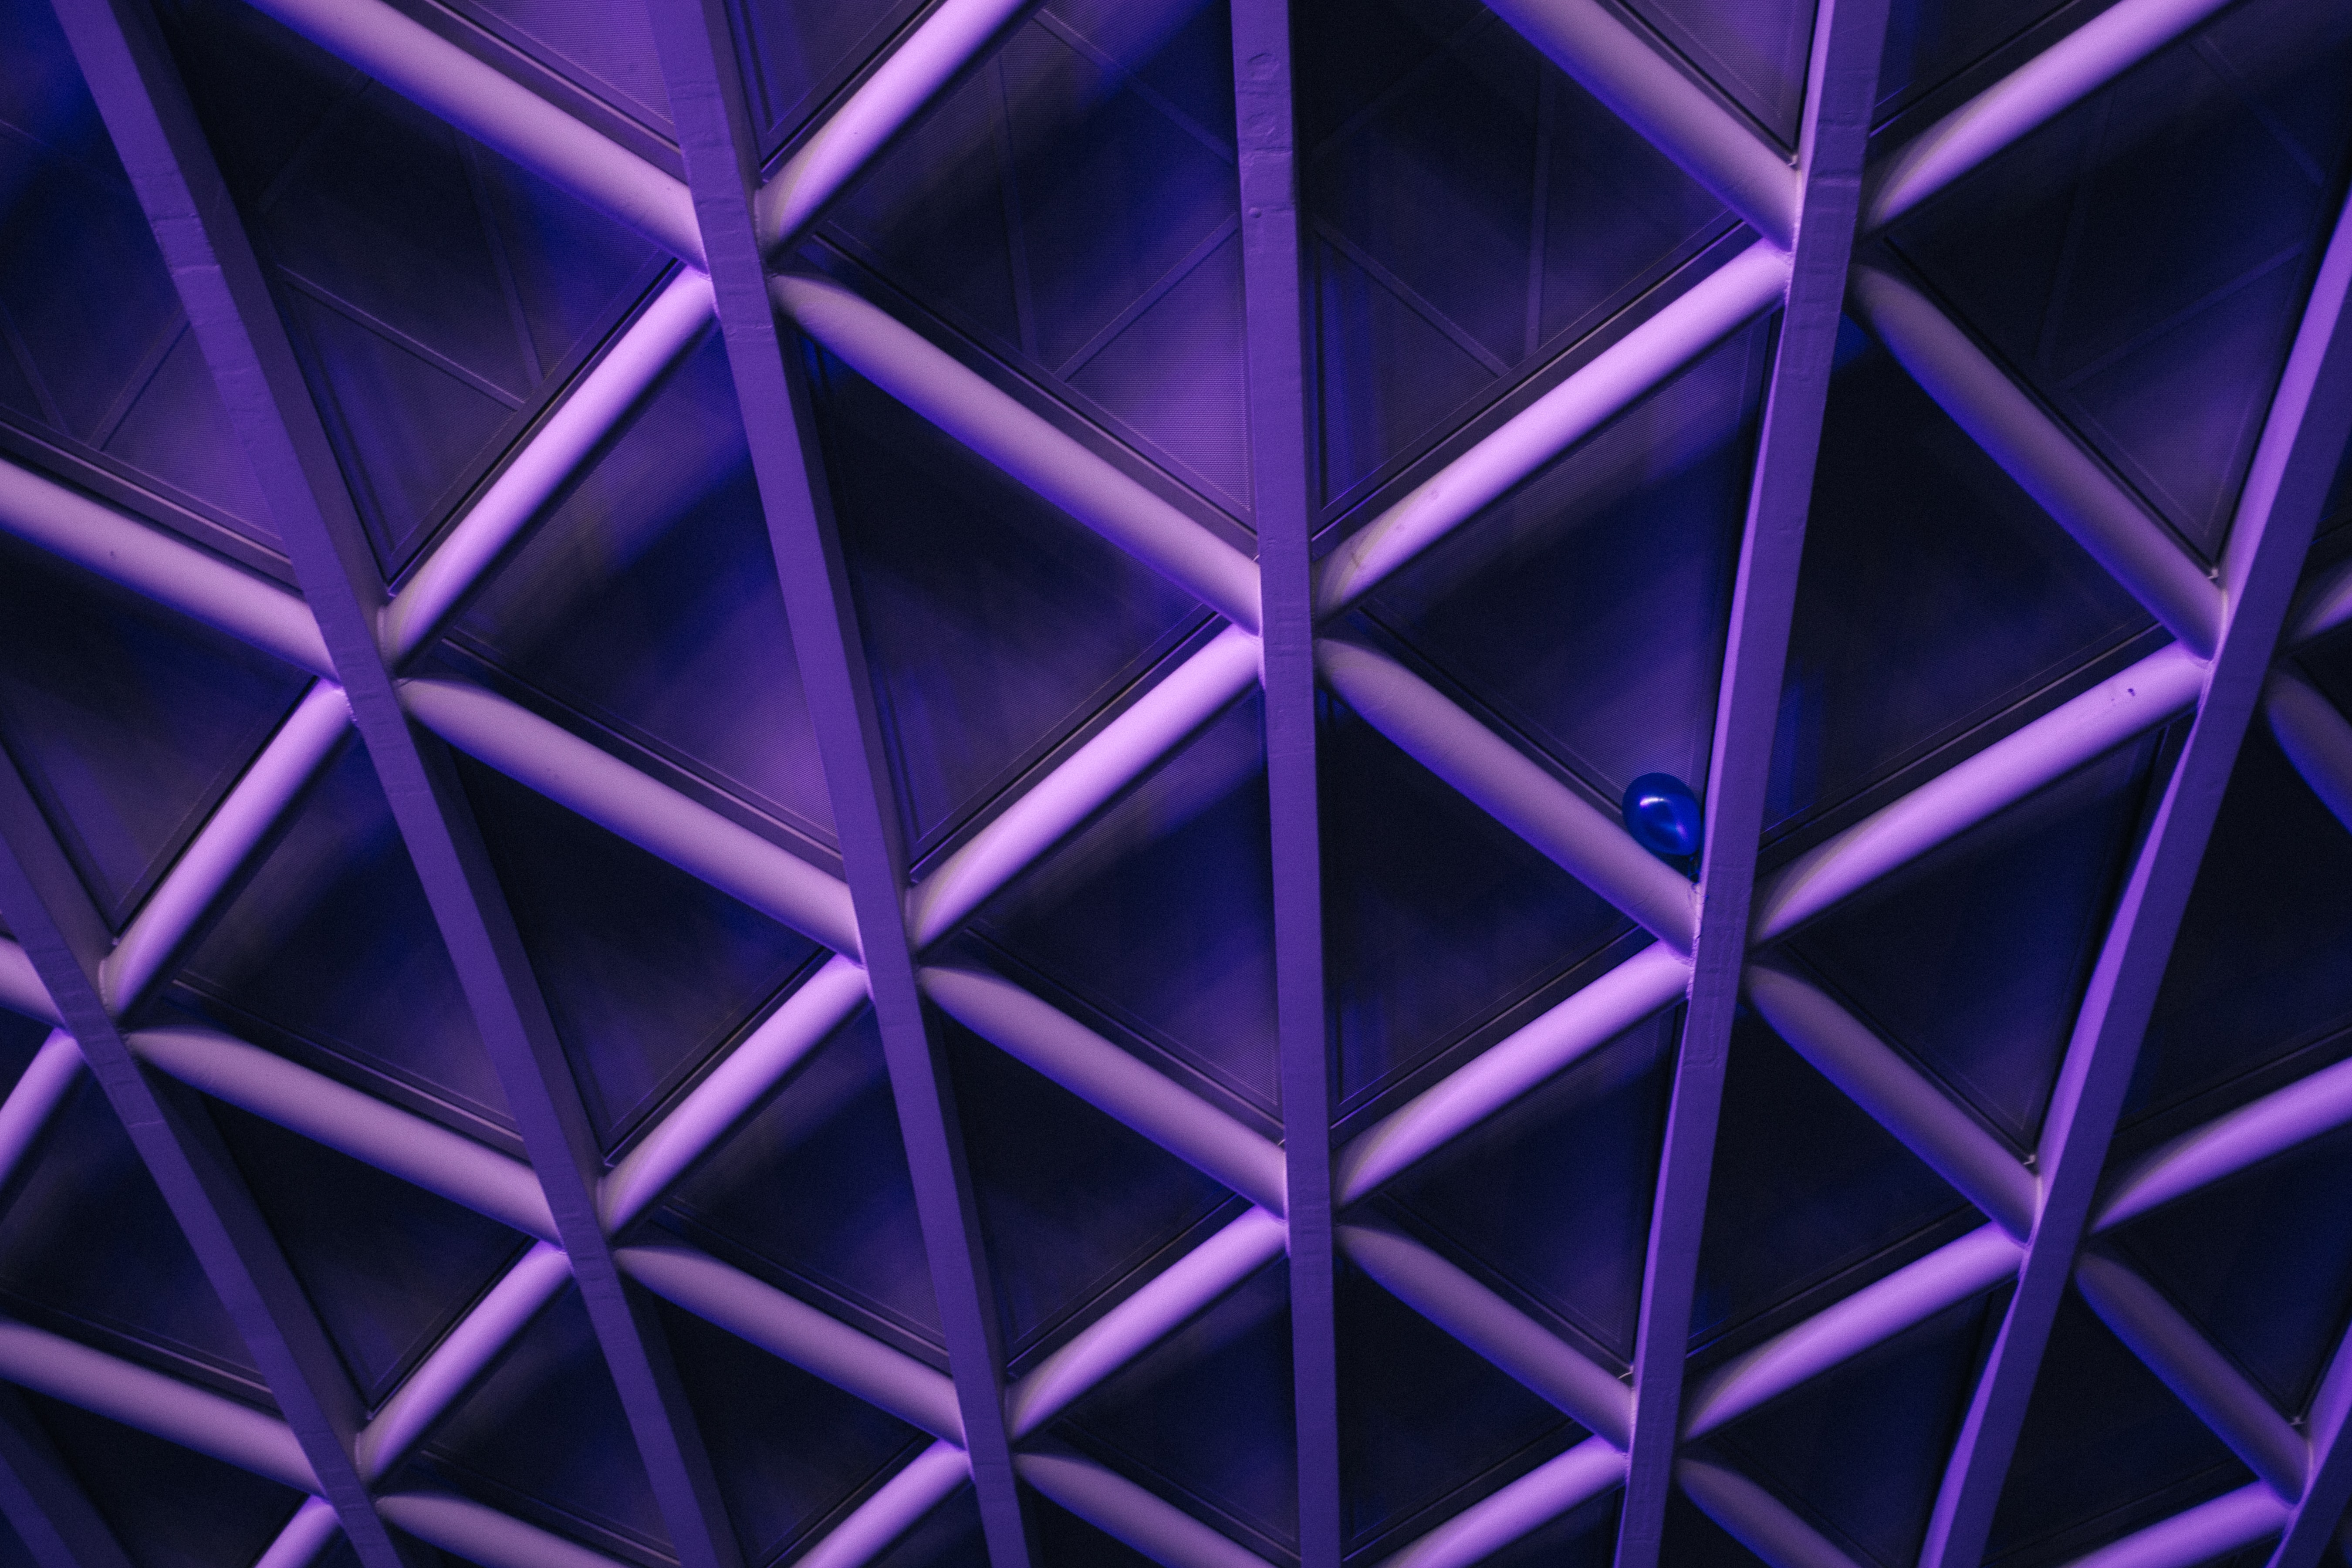 A violet ceiling with a criss-cross pattern; a blue balloon is stuck in the corner one of the crossbars